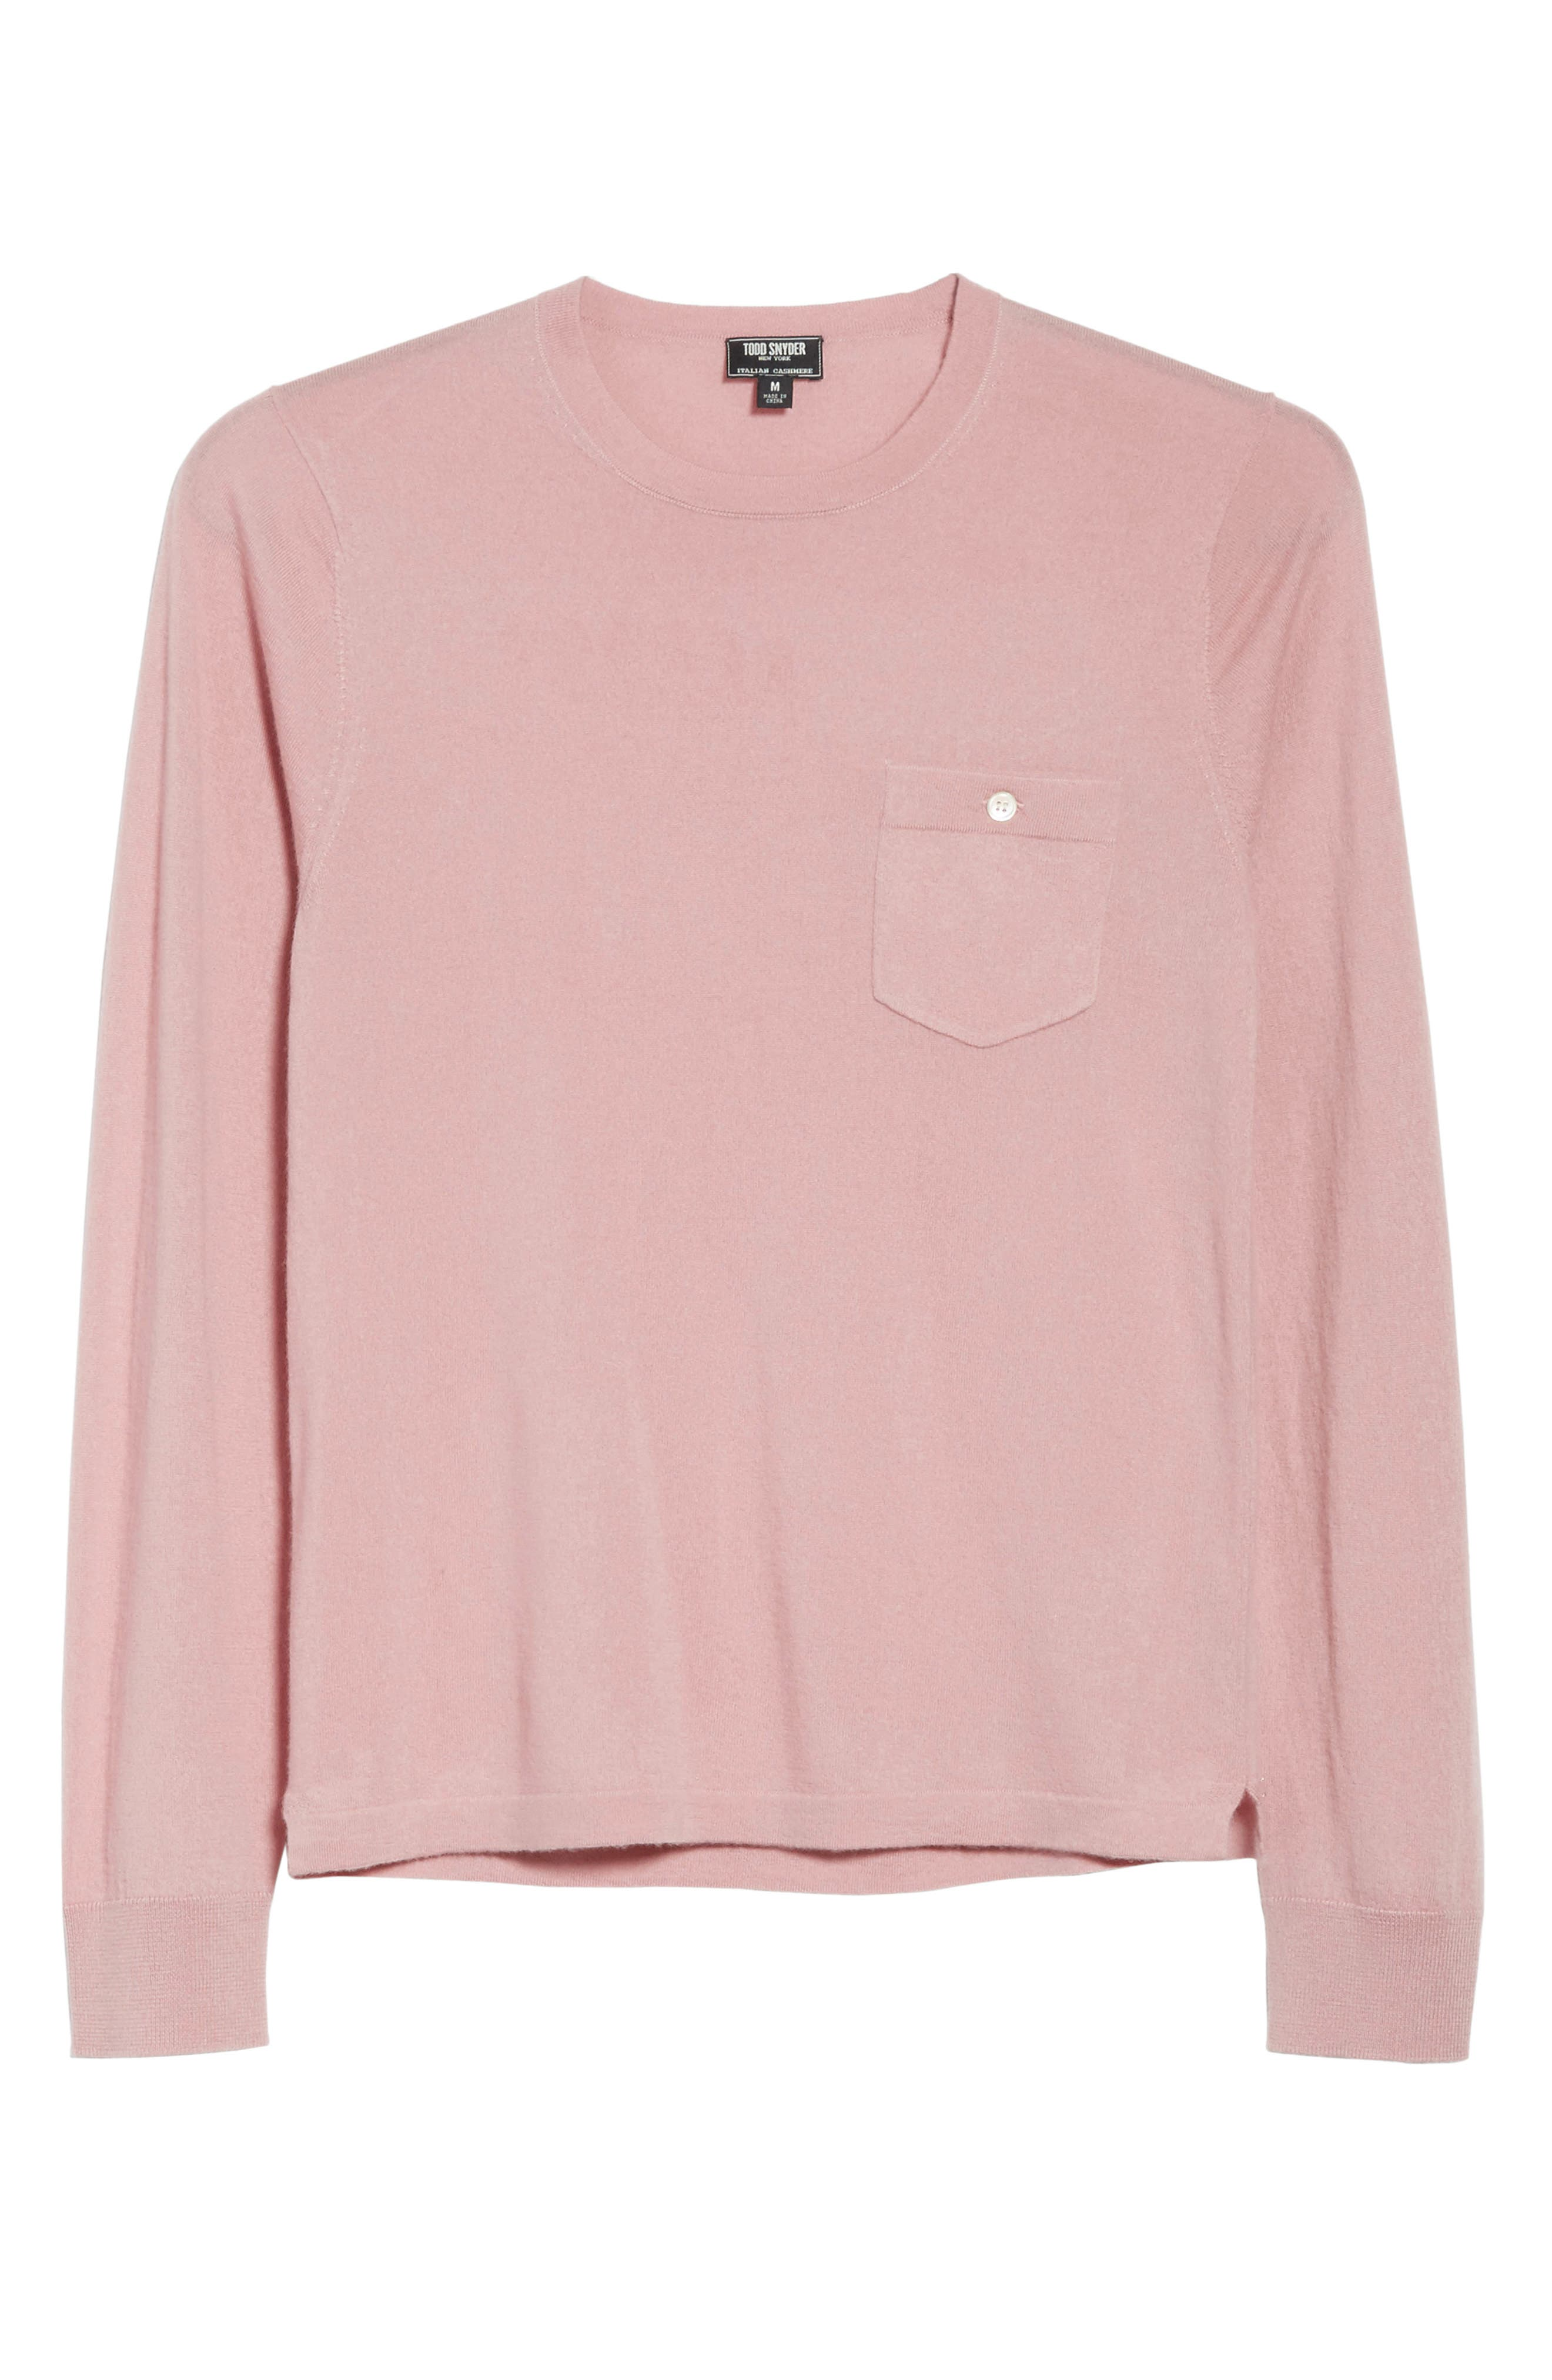 Cashmere Long Sleeve T-Shirt,                             Alternate thumbnail 6, color,                             Pink